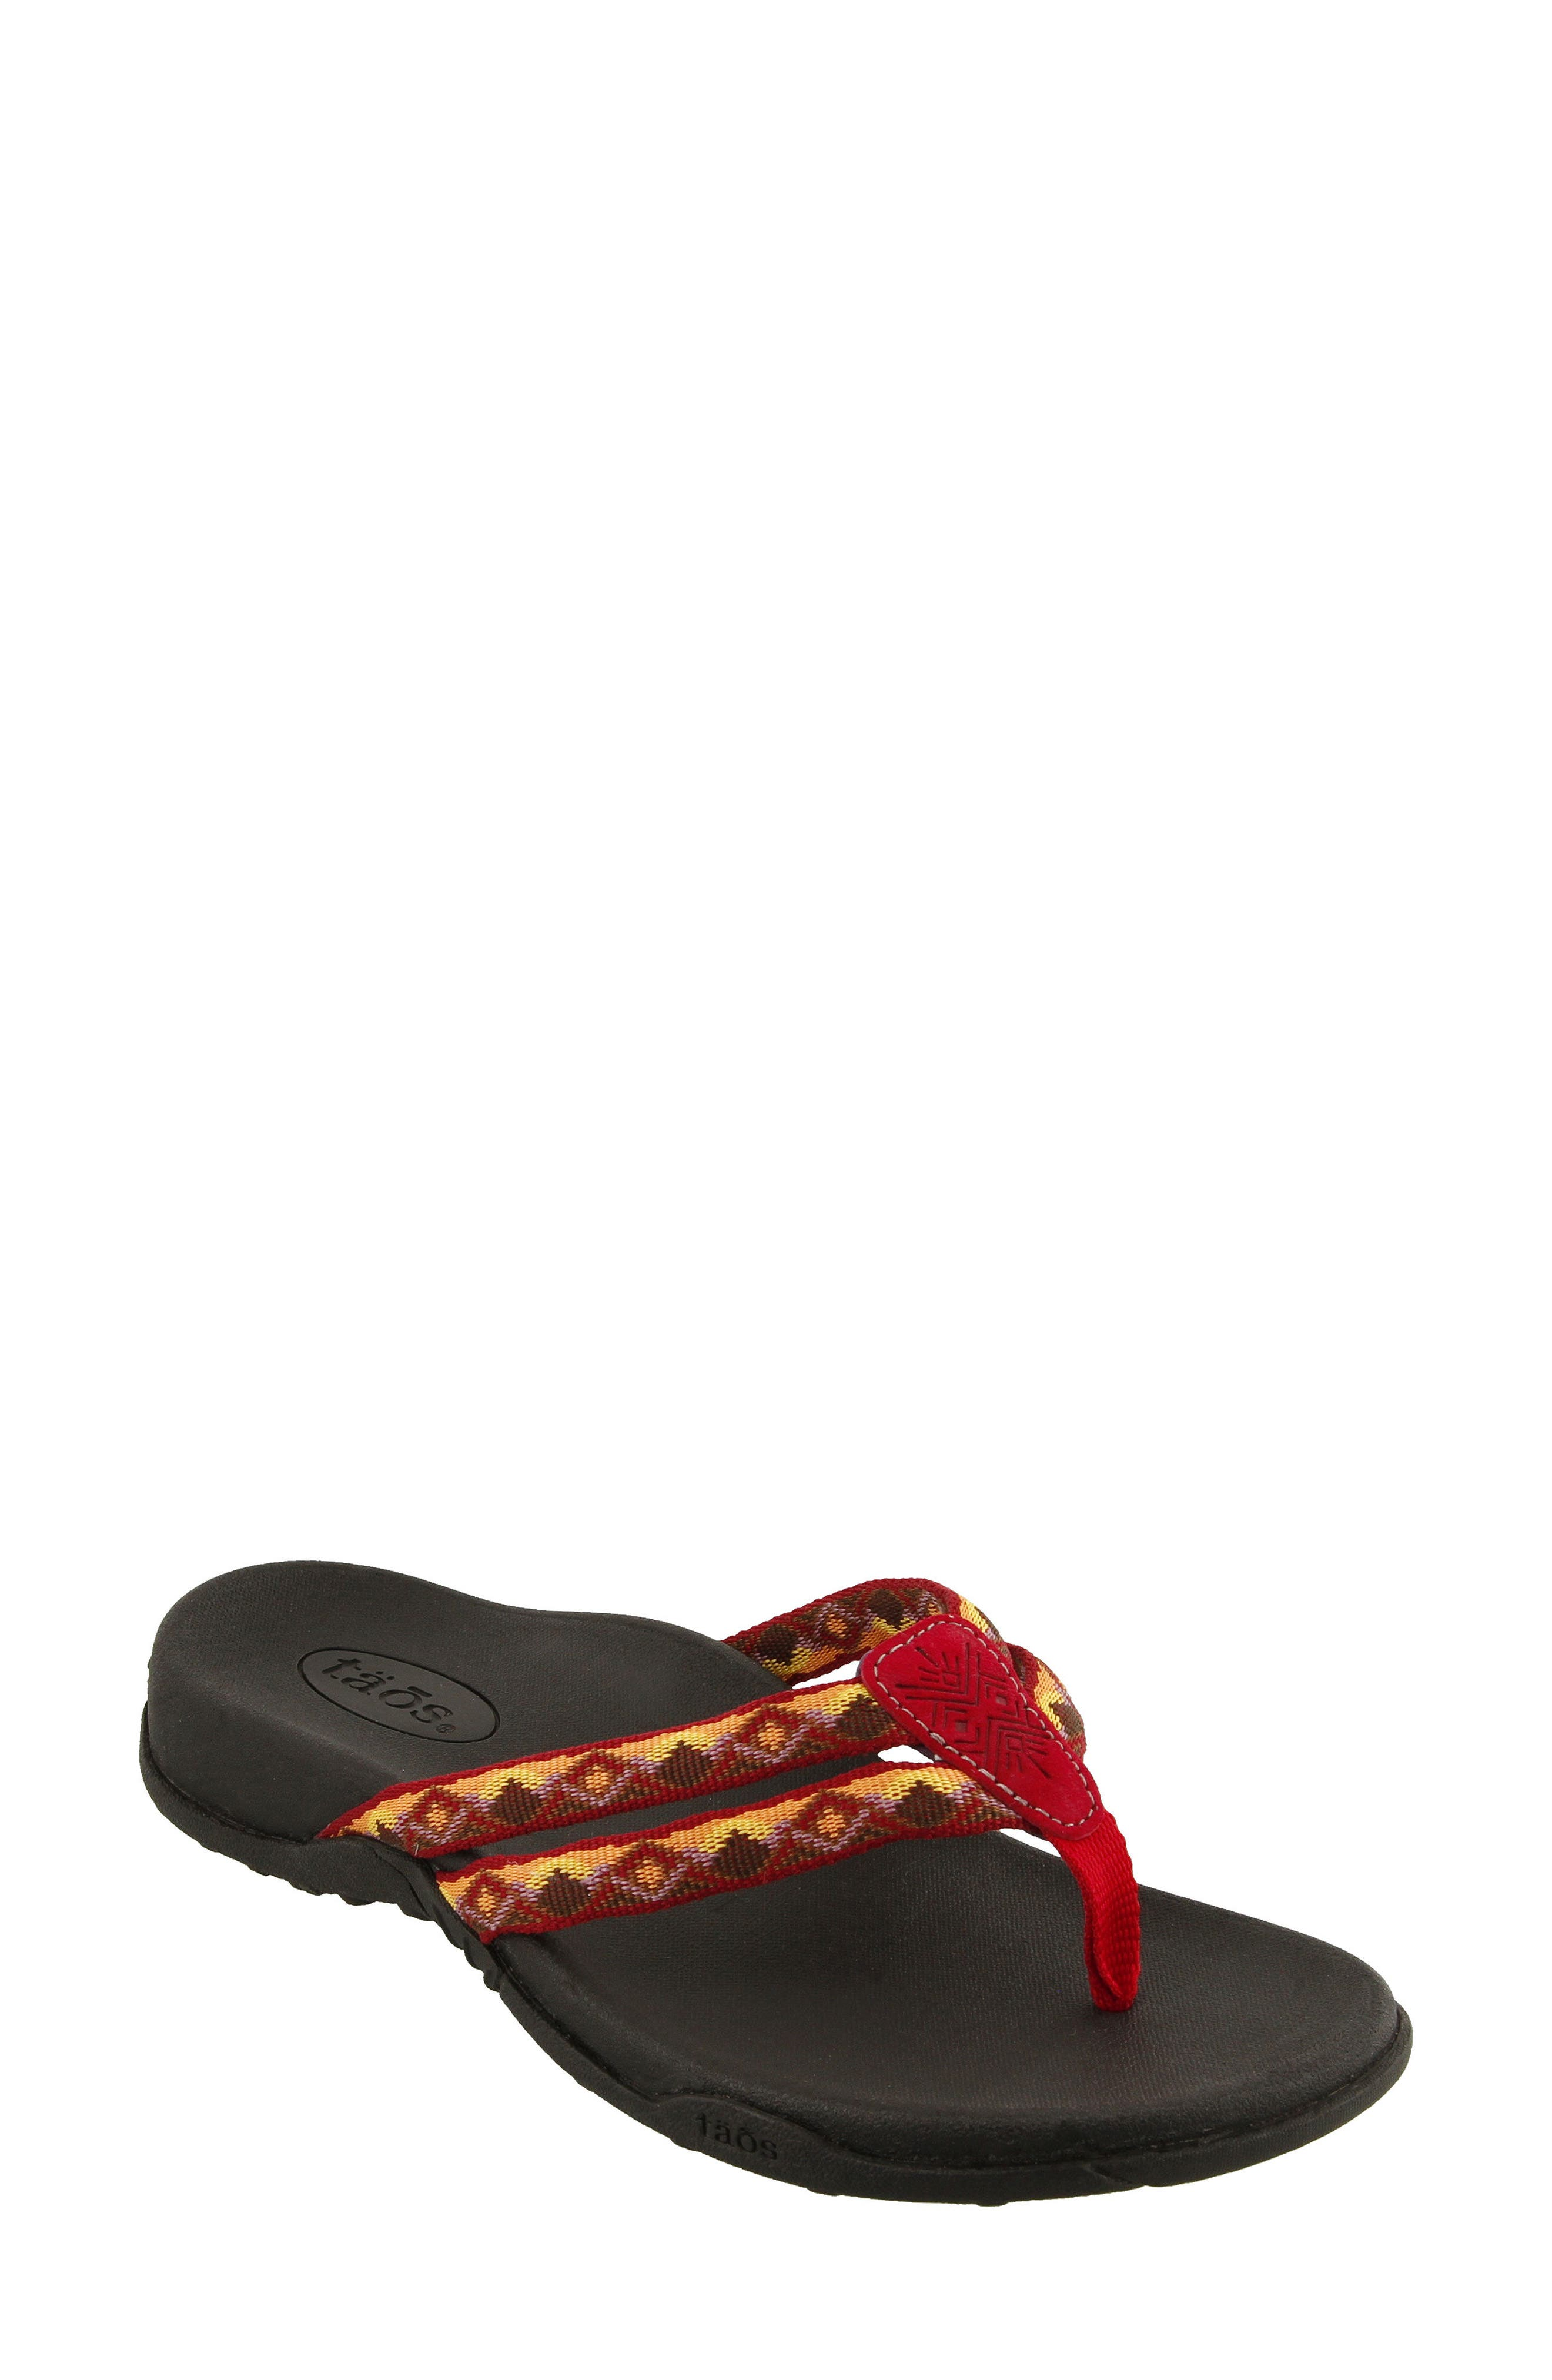 Primo Flip Flop,                             Main thumbnail 1, color,                             Red/ Orange Fabric